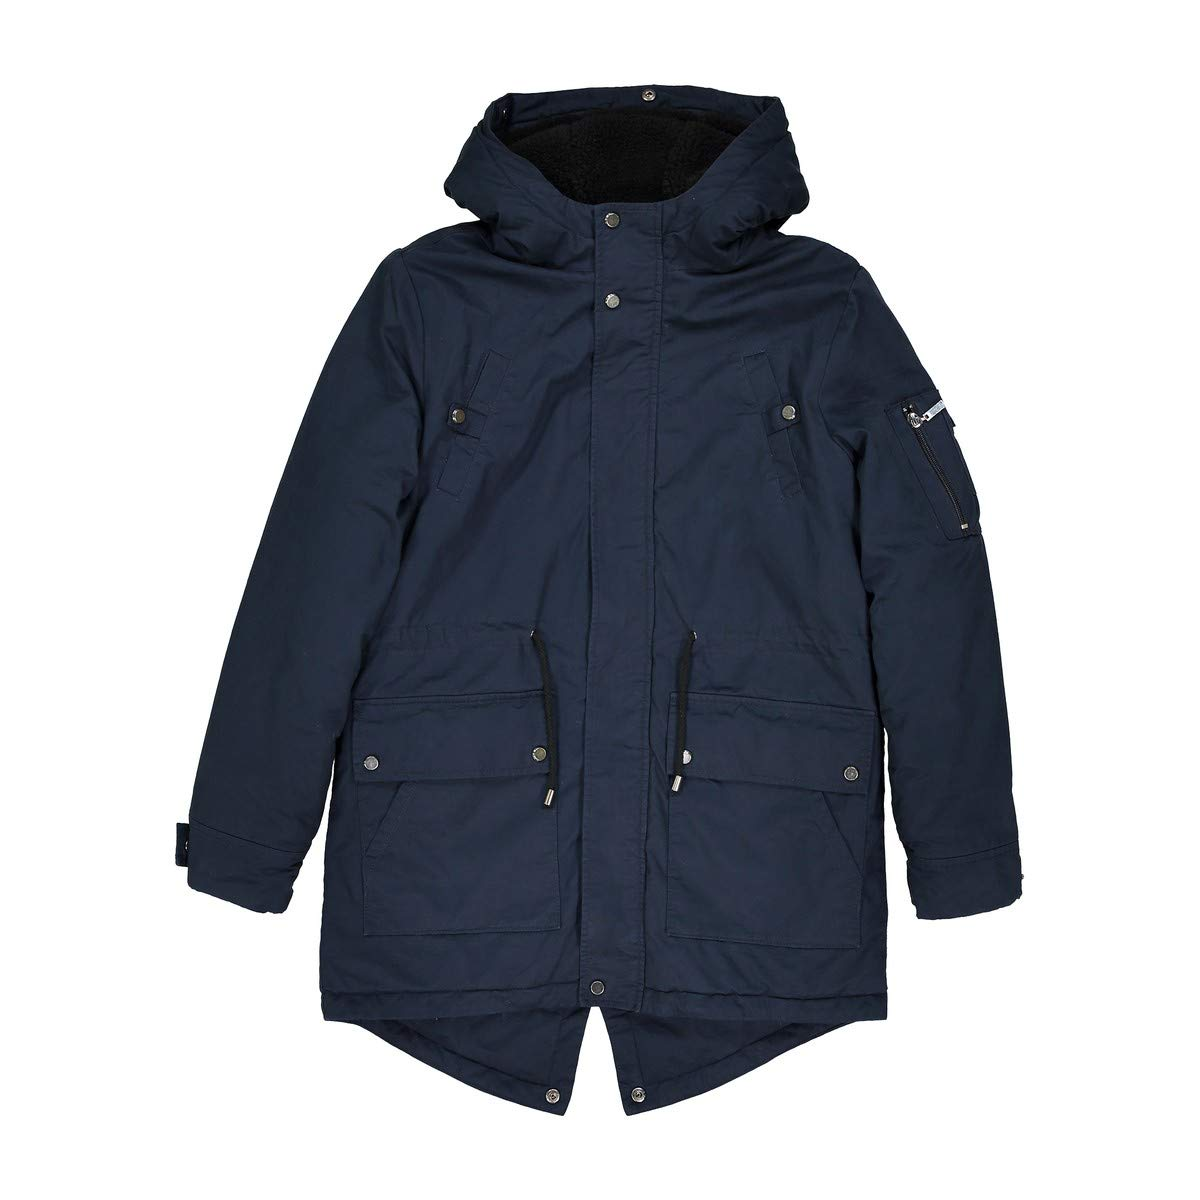 La Redoute Collections Big Boys Warm Parka, 10-16 Years Blue Size 16 Years - 68 in.